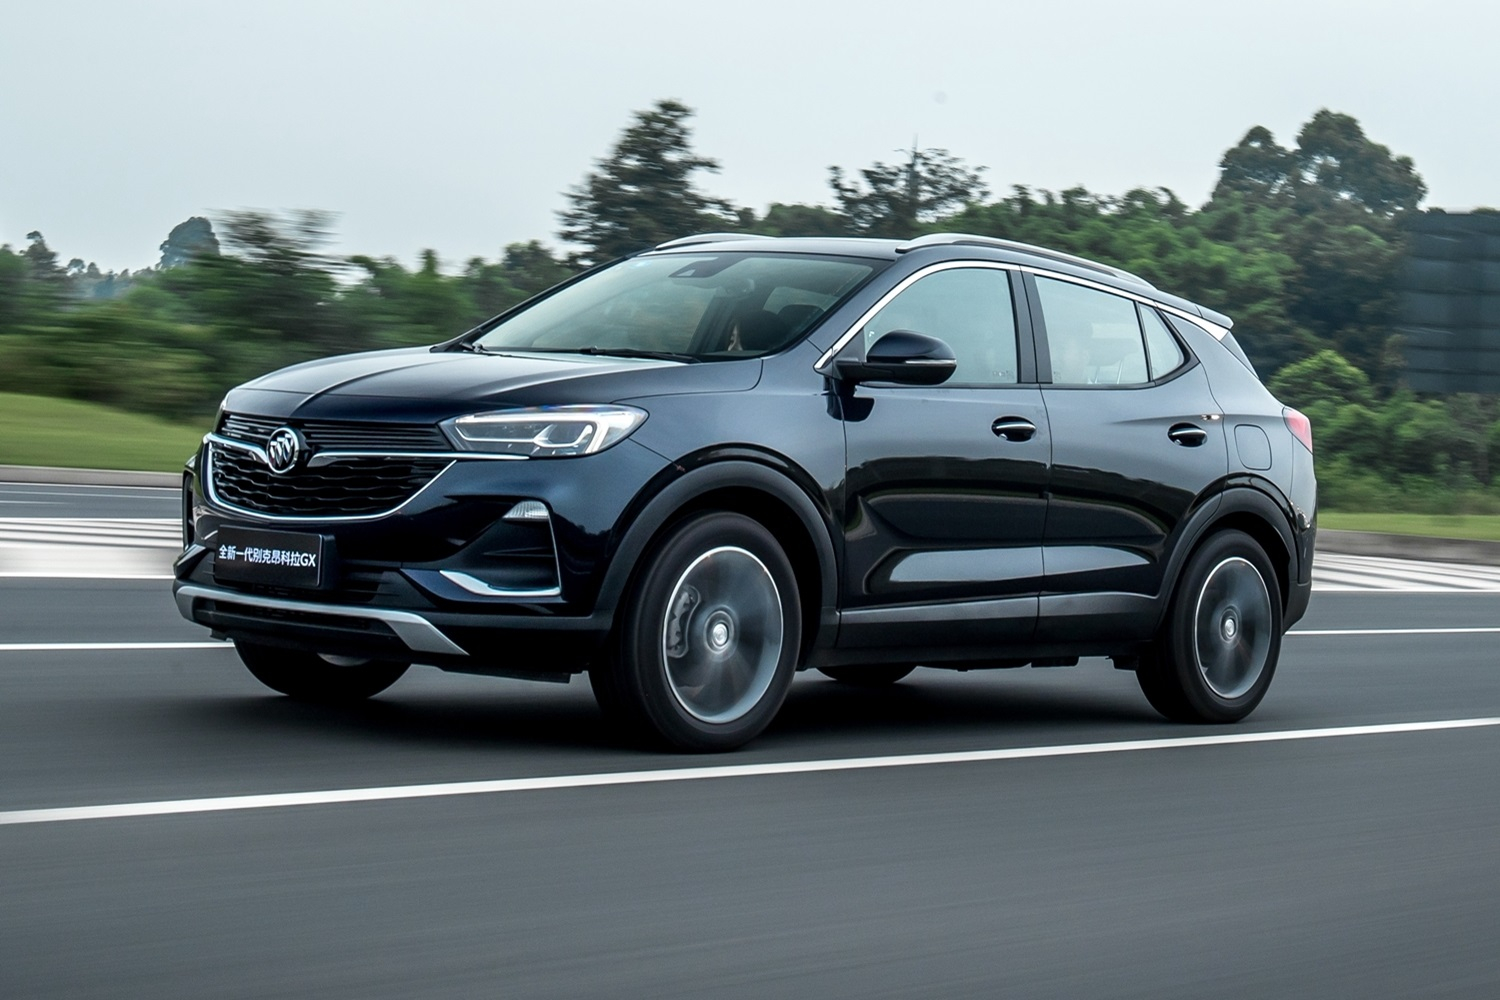 2020 Buick Encore Gx To Offer Two 3-Cylinder Turbo Engines New 2022 Buick Encore Gx Configurations, Towing Capacity, Lease Deals